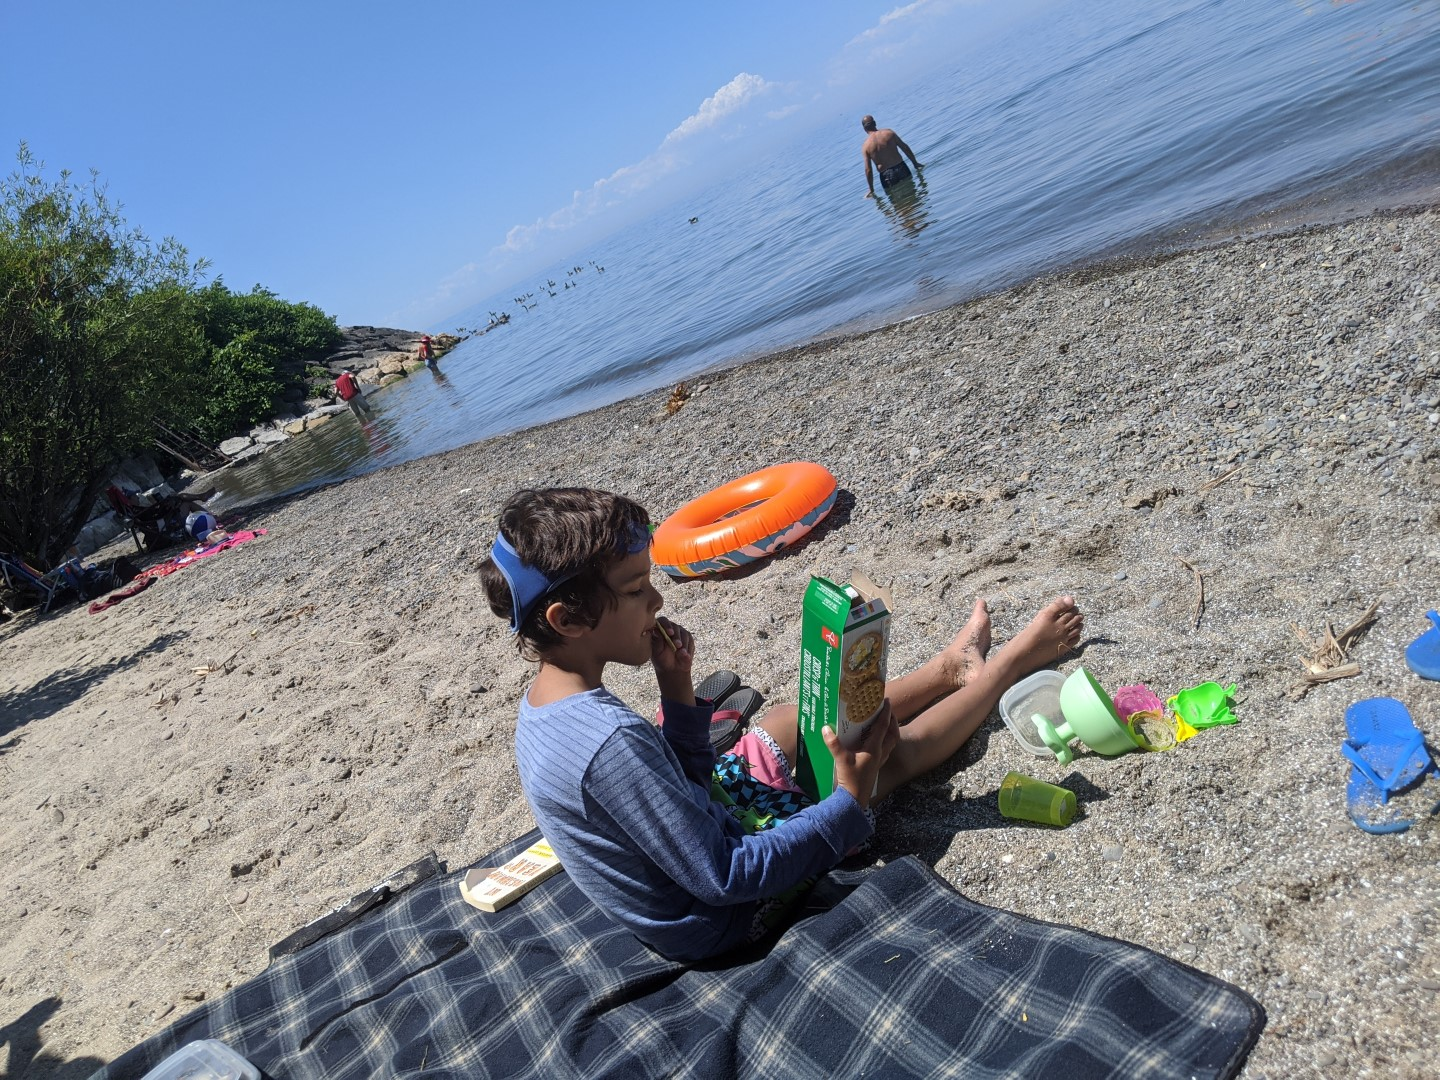 boy sitting on beach sand with crackers in hand and orange floatie on side